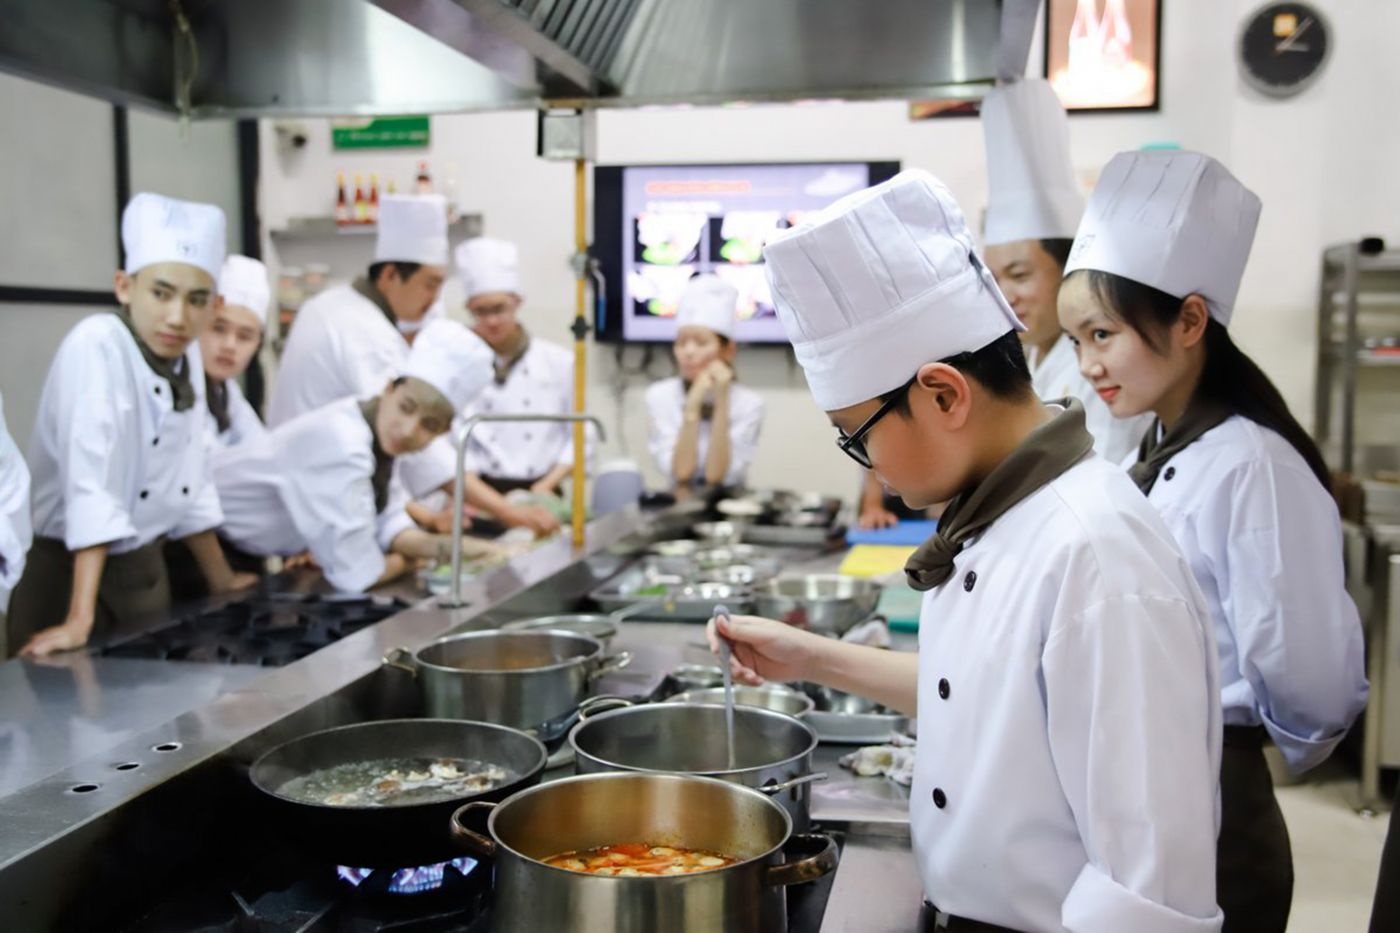 Youth employment hospitality